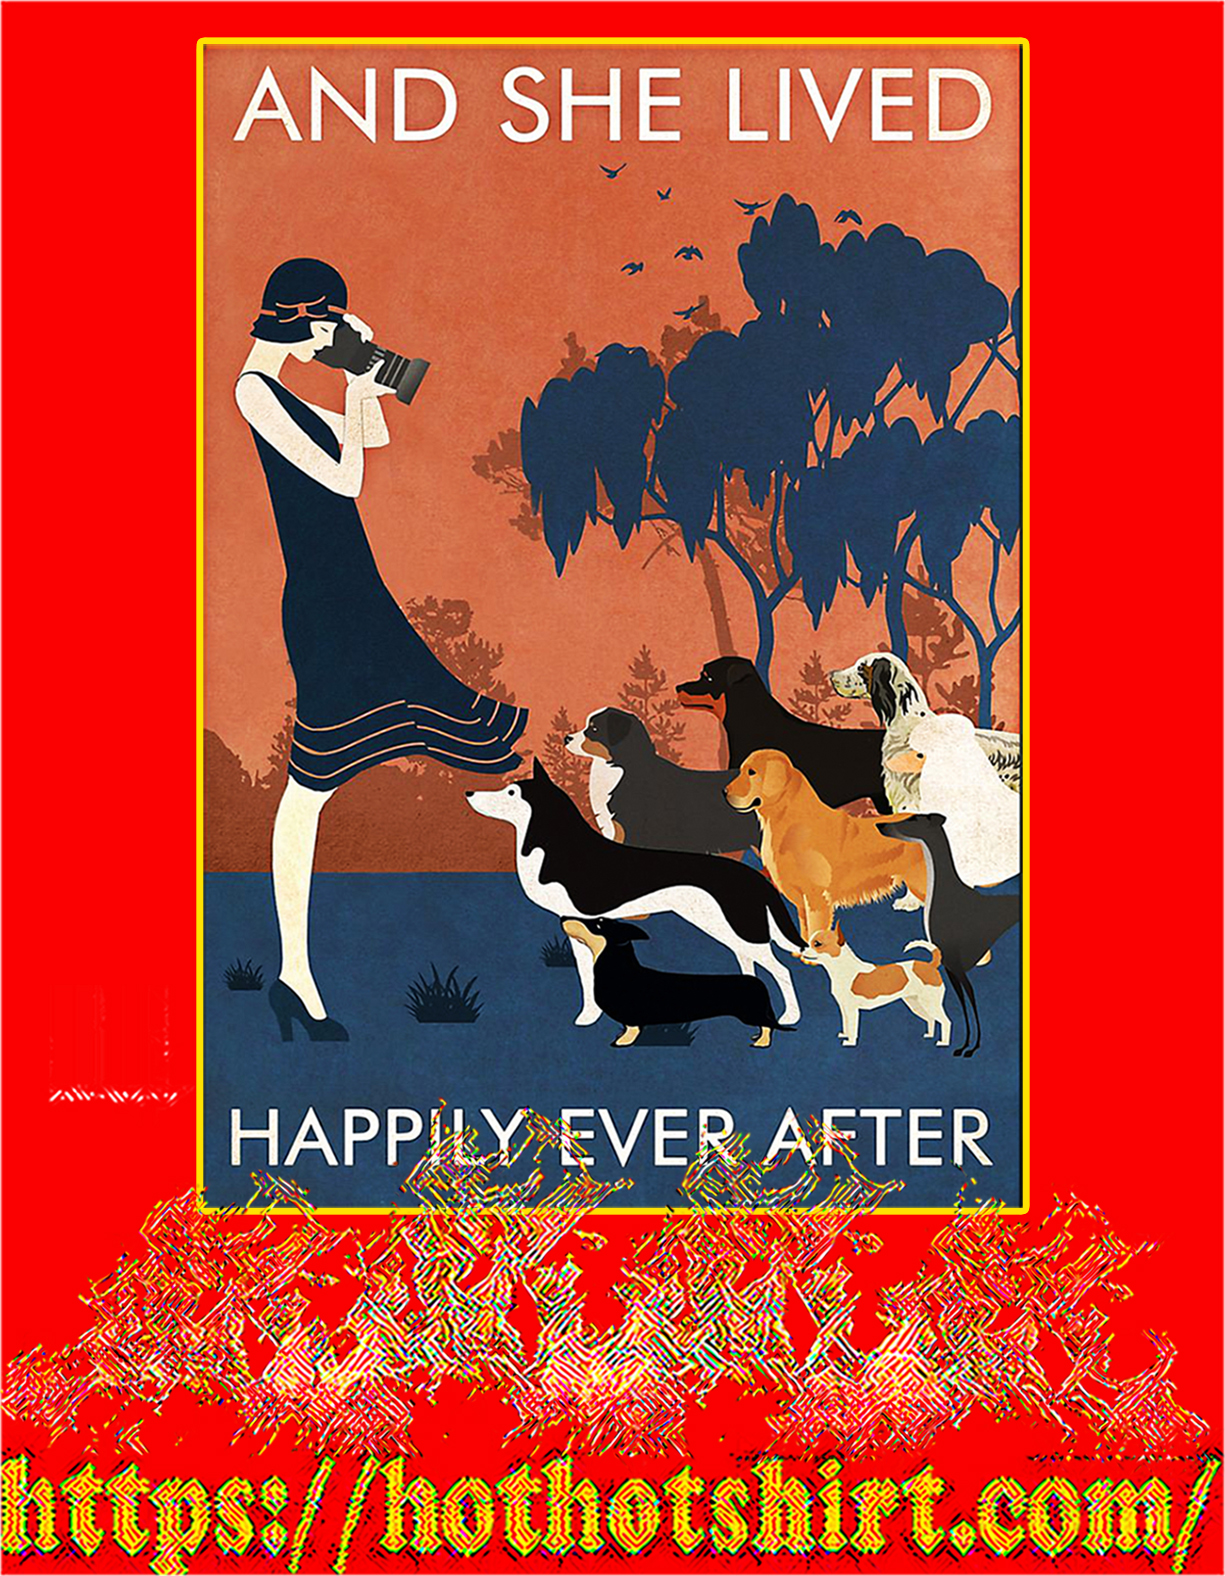 Photography dog And she lived happily ever after poster - A4